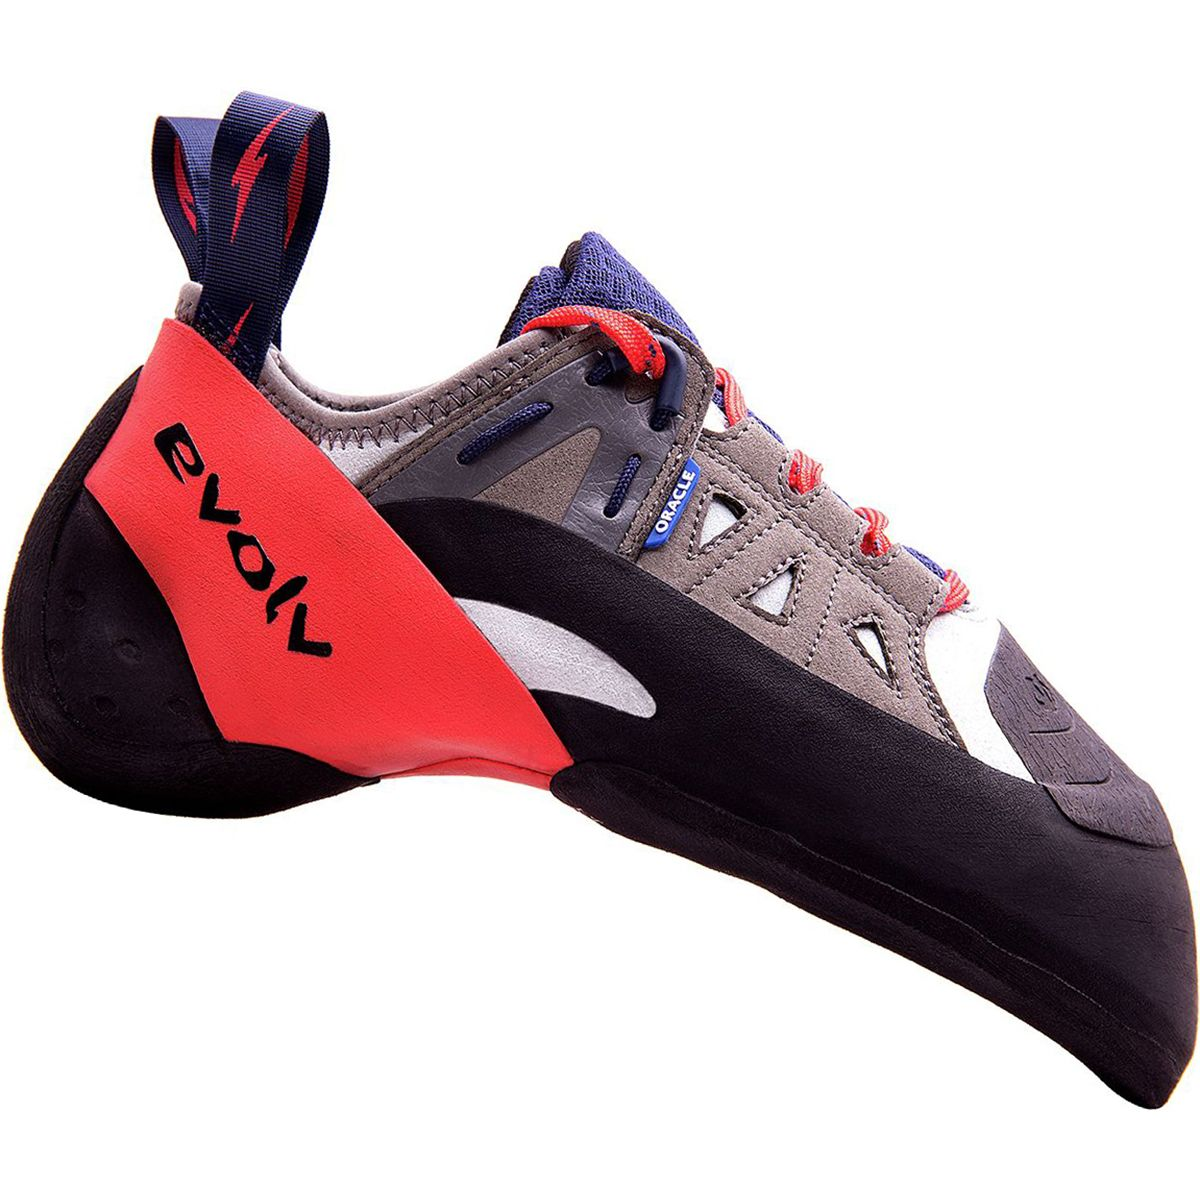 Evolv Oracle climbing shoe, in black and red colours